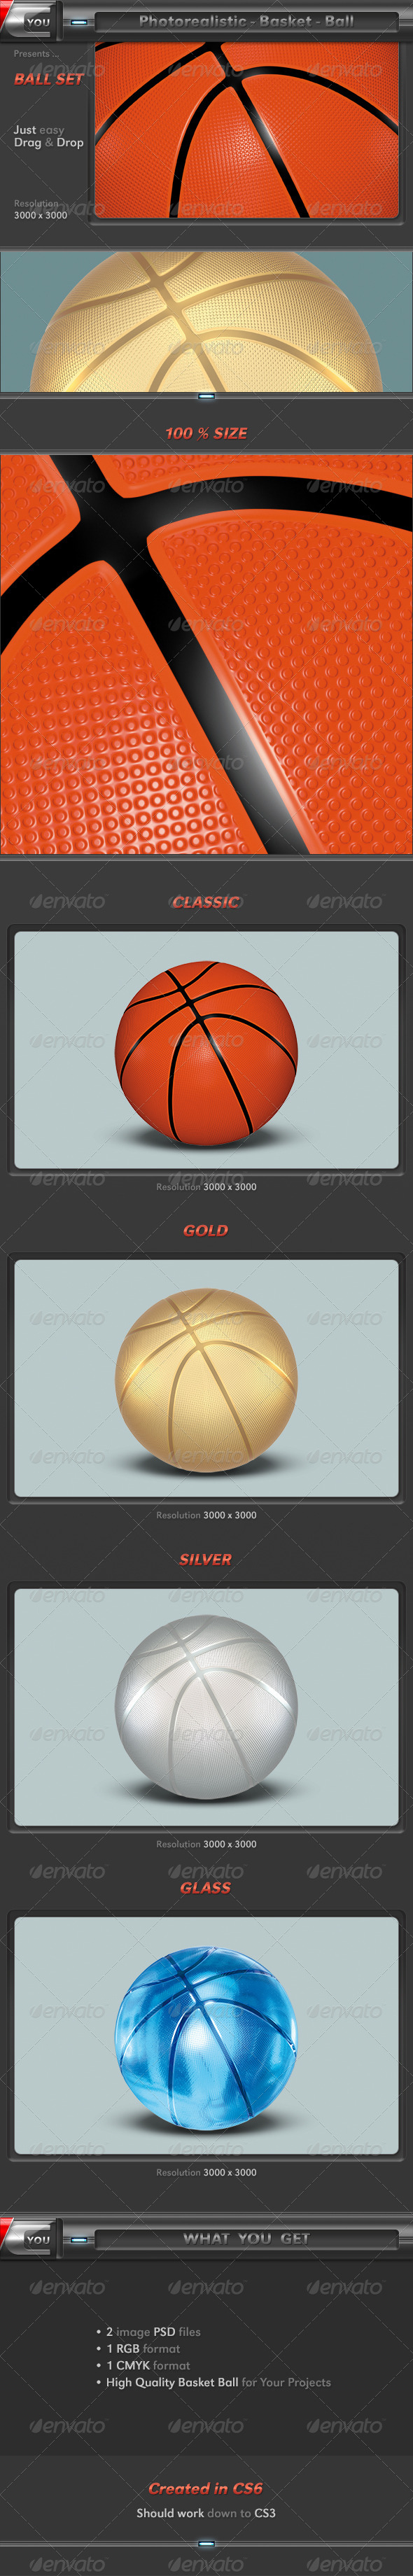 Basketball as 3D Photorealistic Ball Set - Objects 3D Renders